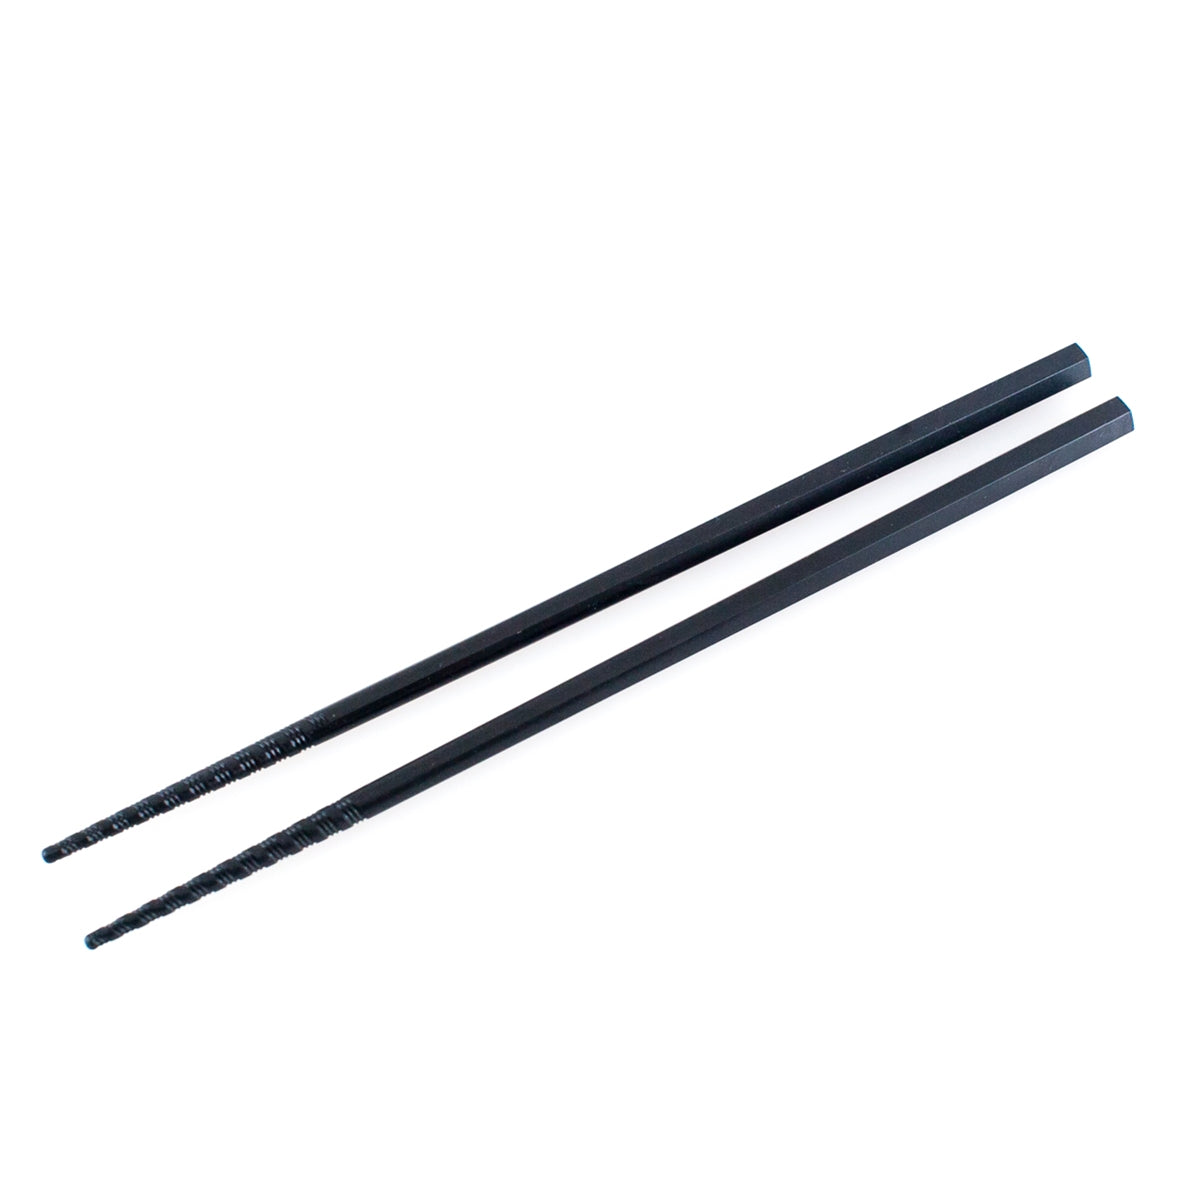 Black Non-Slip Plastic Chopsticks